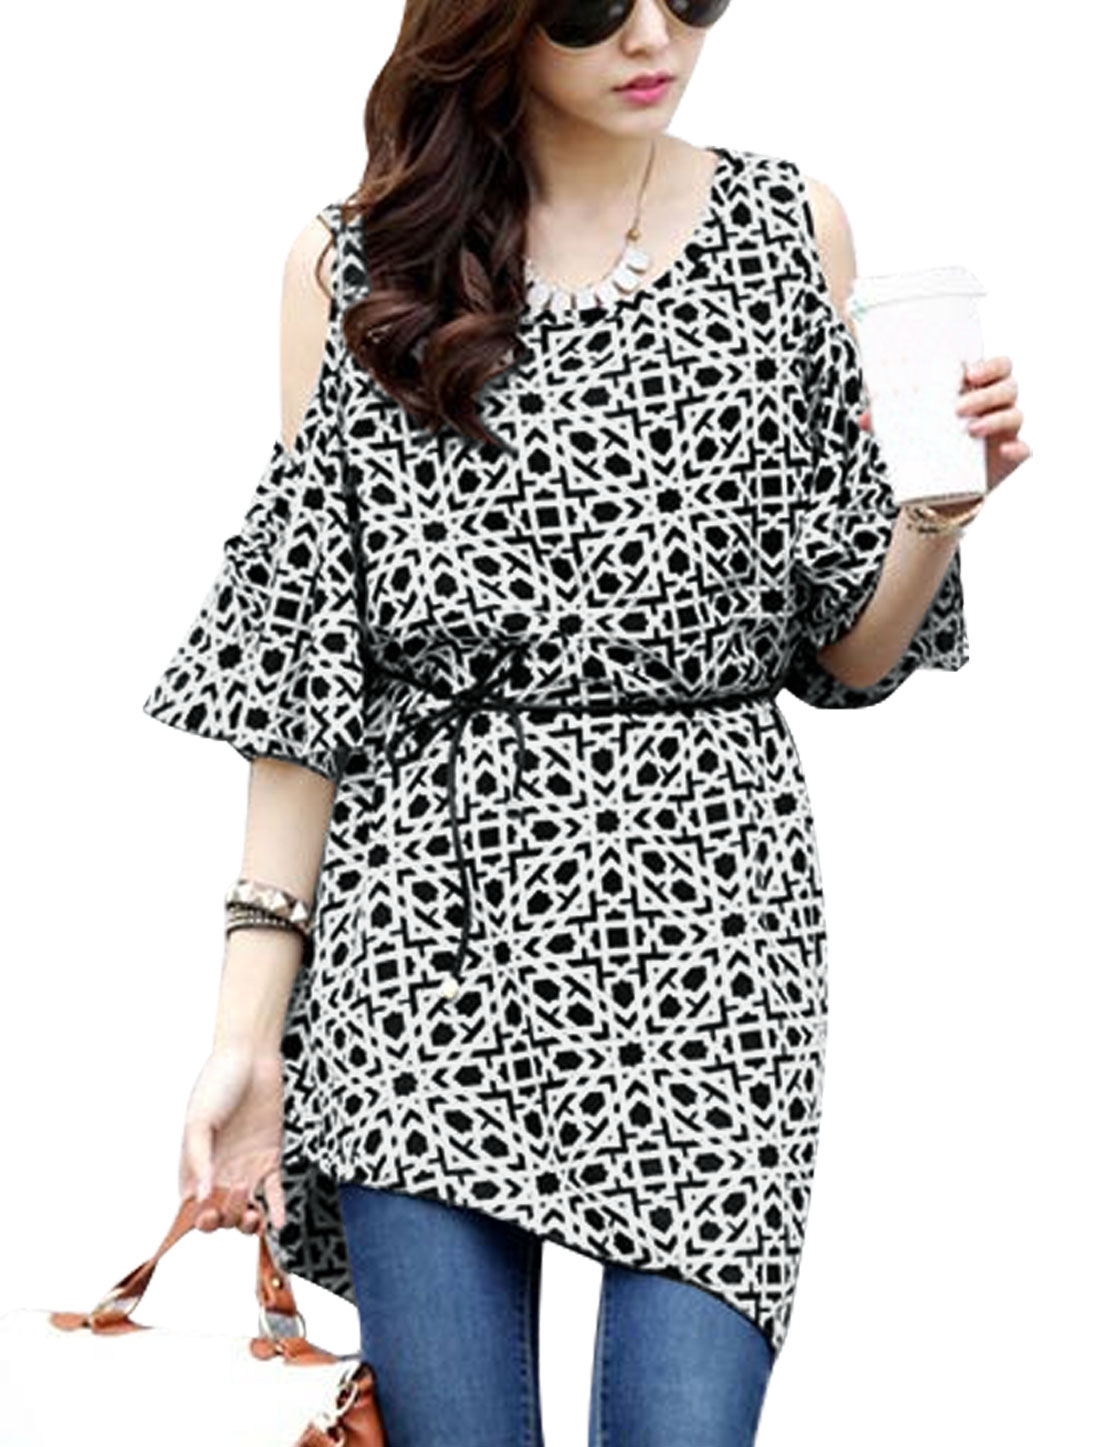 Lady High Low Hem Cut Out Shoulder Allover Prints Self Tie Blouse Black White XS